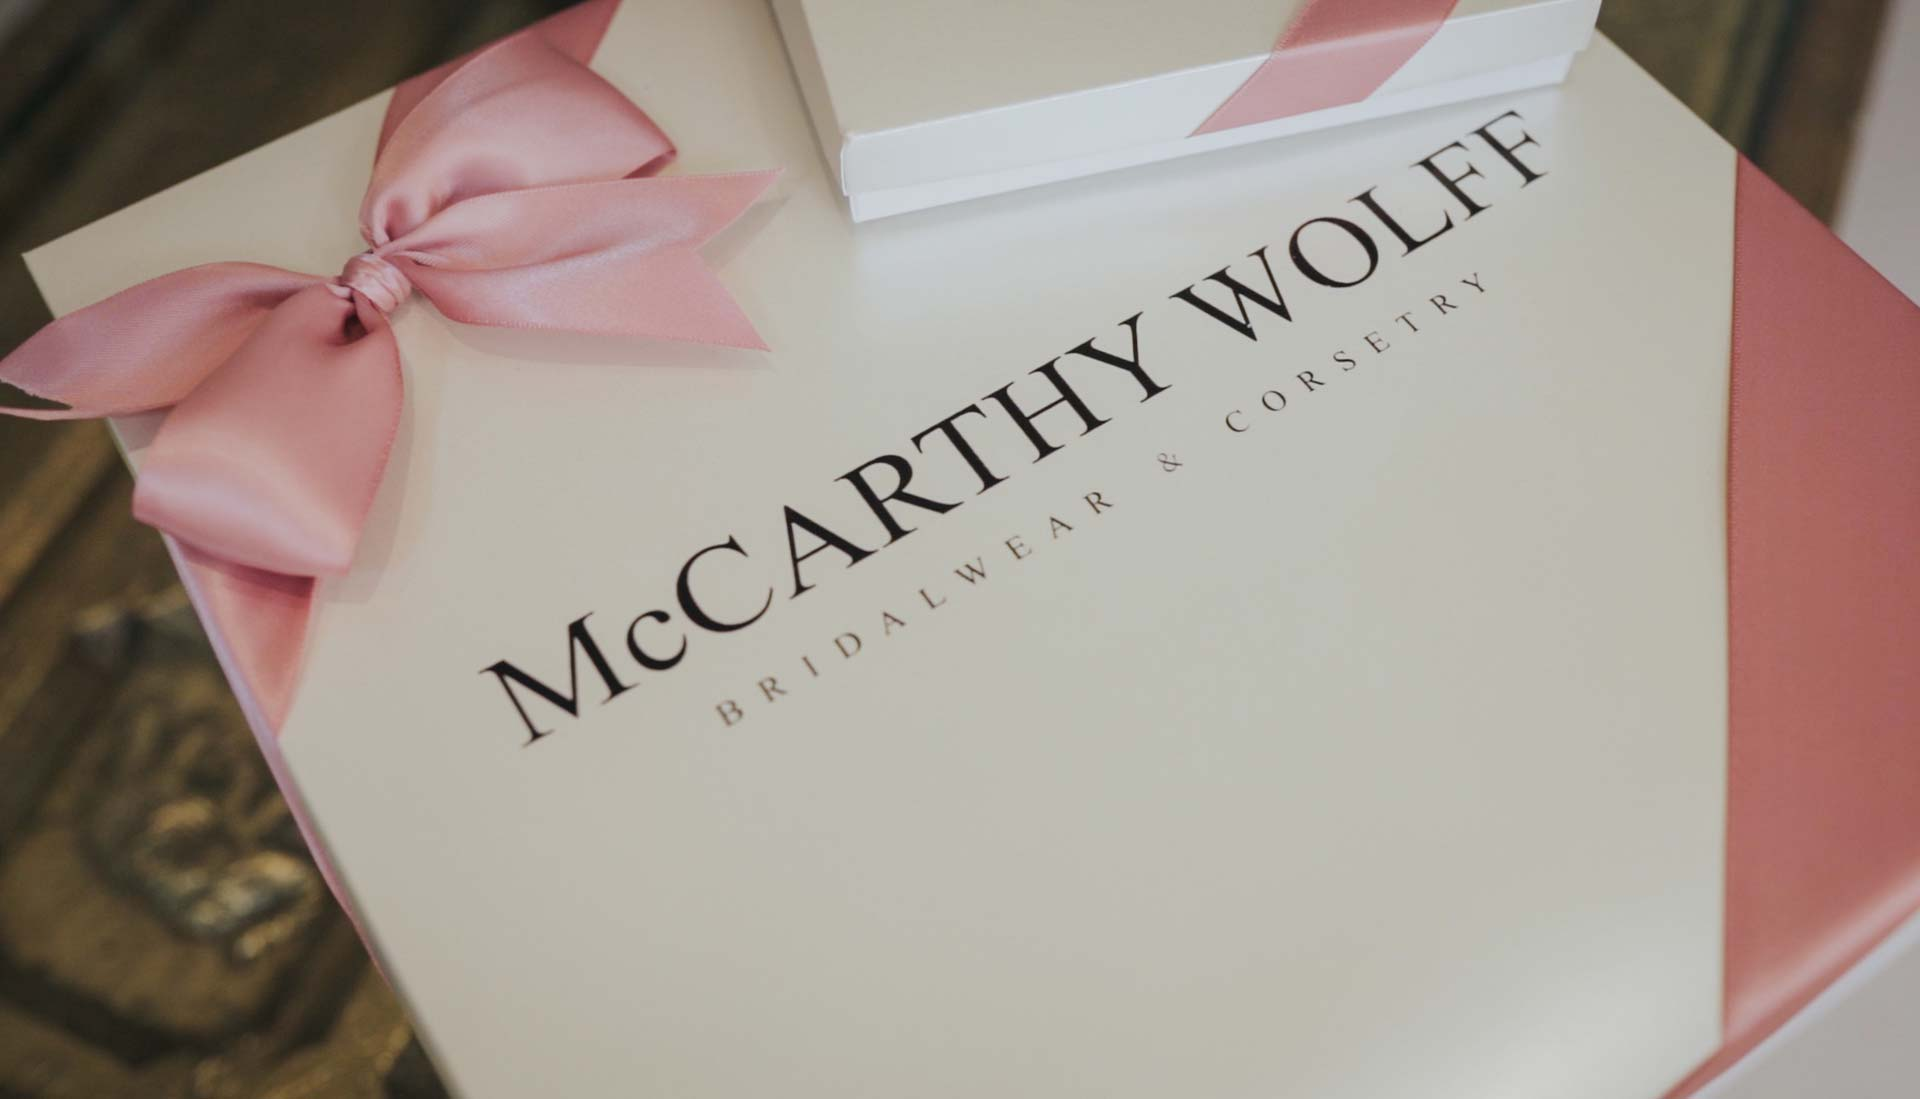 McCarthy Wolff creations are bespoke